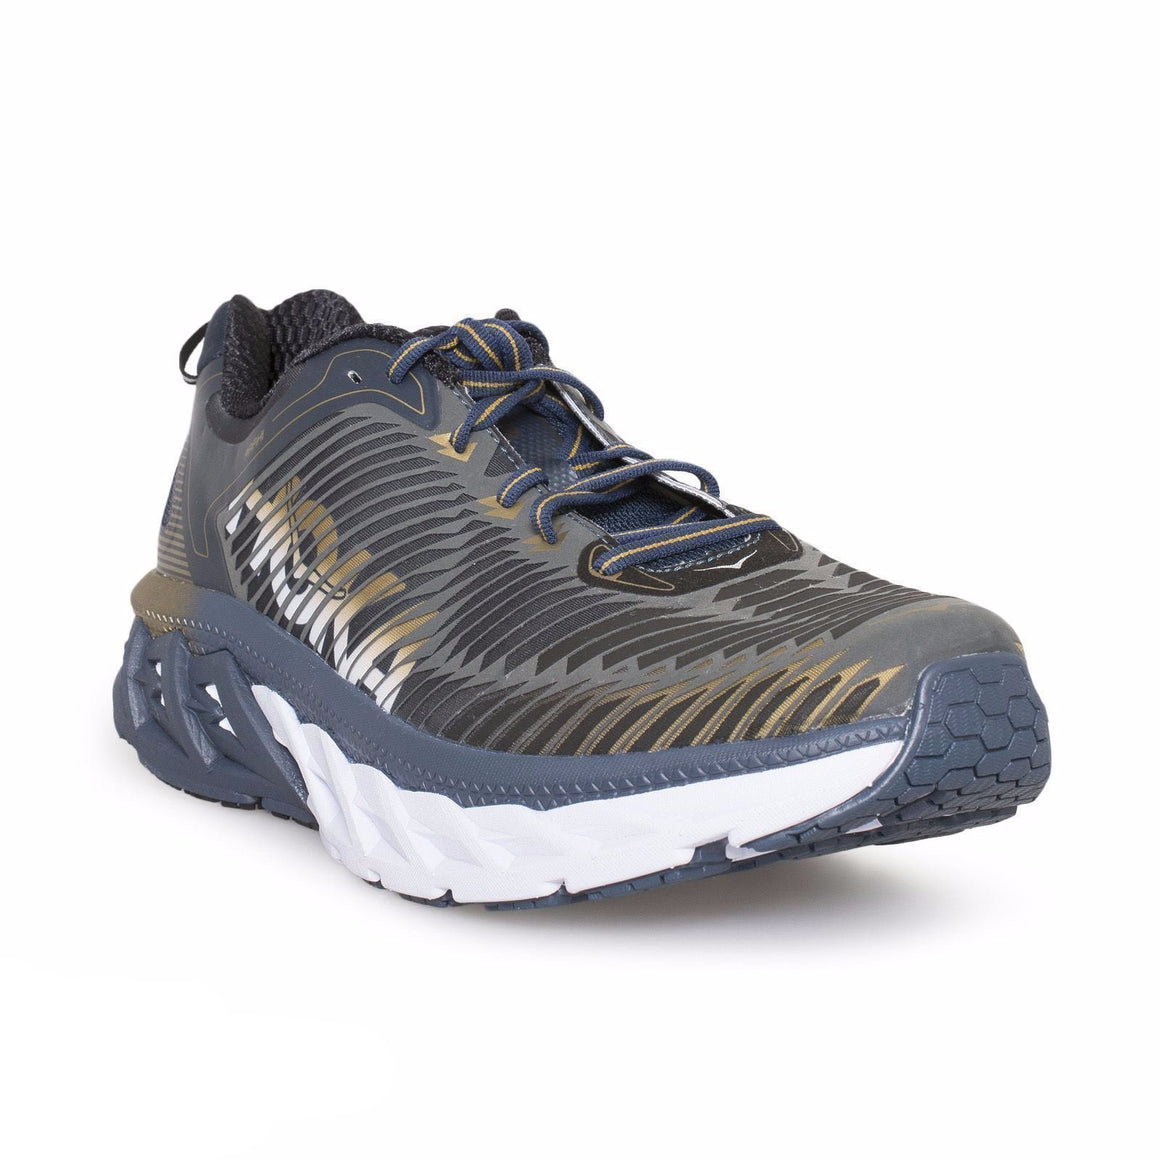 Hoka Arahi Midnight Navy Metallic Gold Shoes